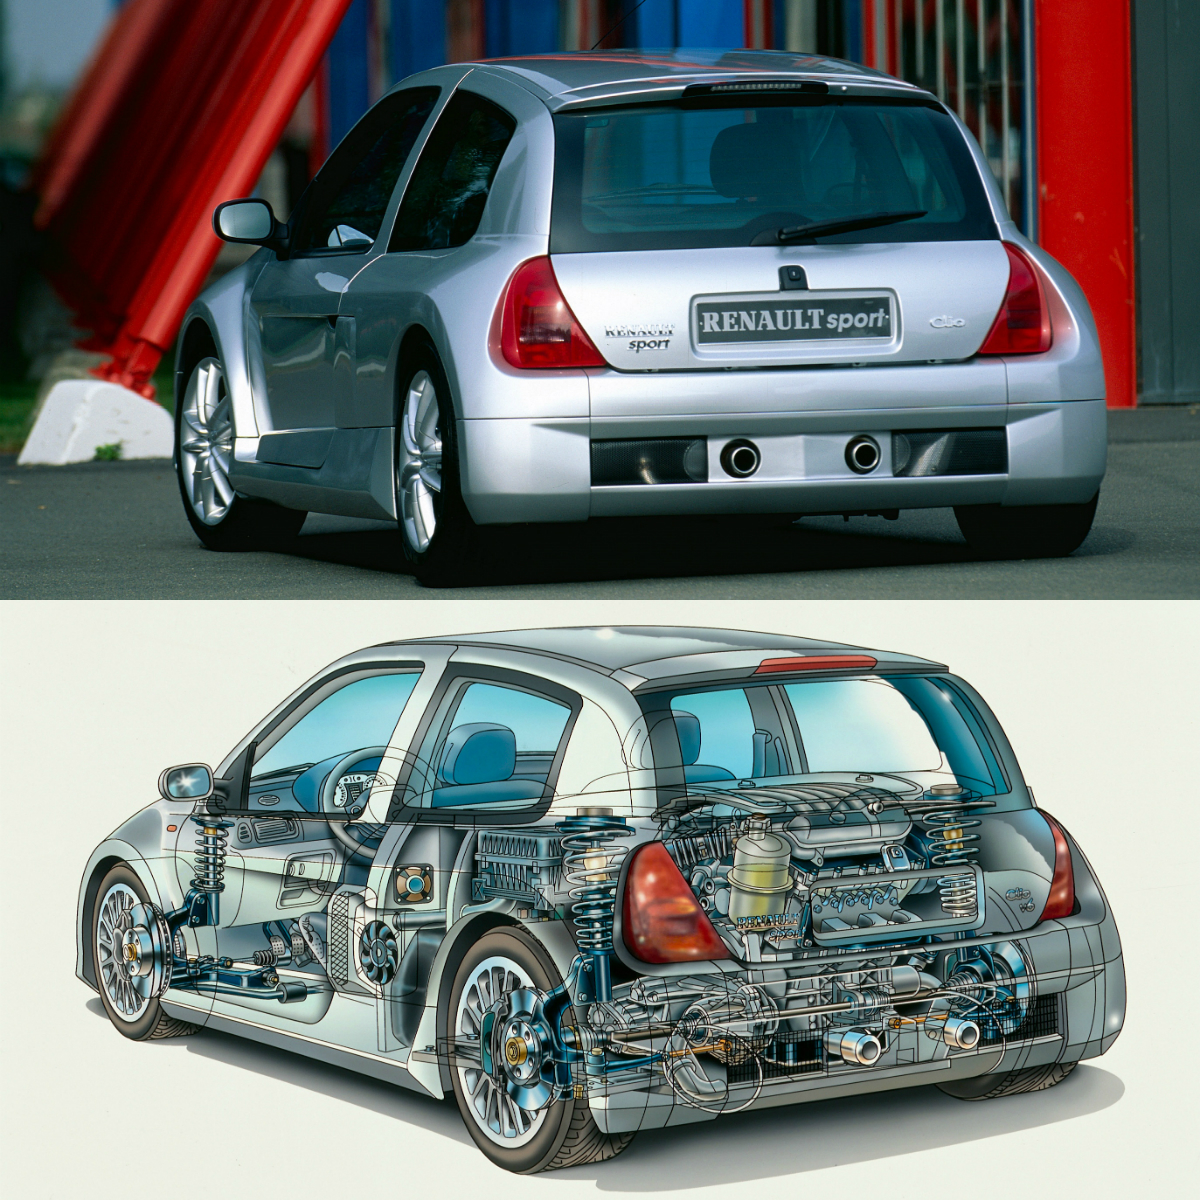 Clio Sport: Renault Sport Clio V6 Was The Hatchback Of Notre-Dame